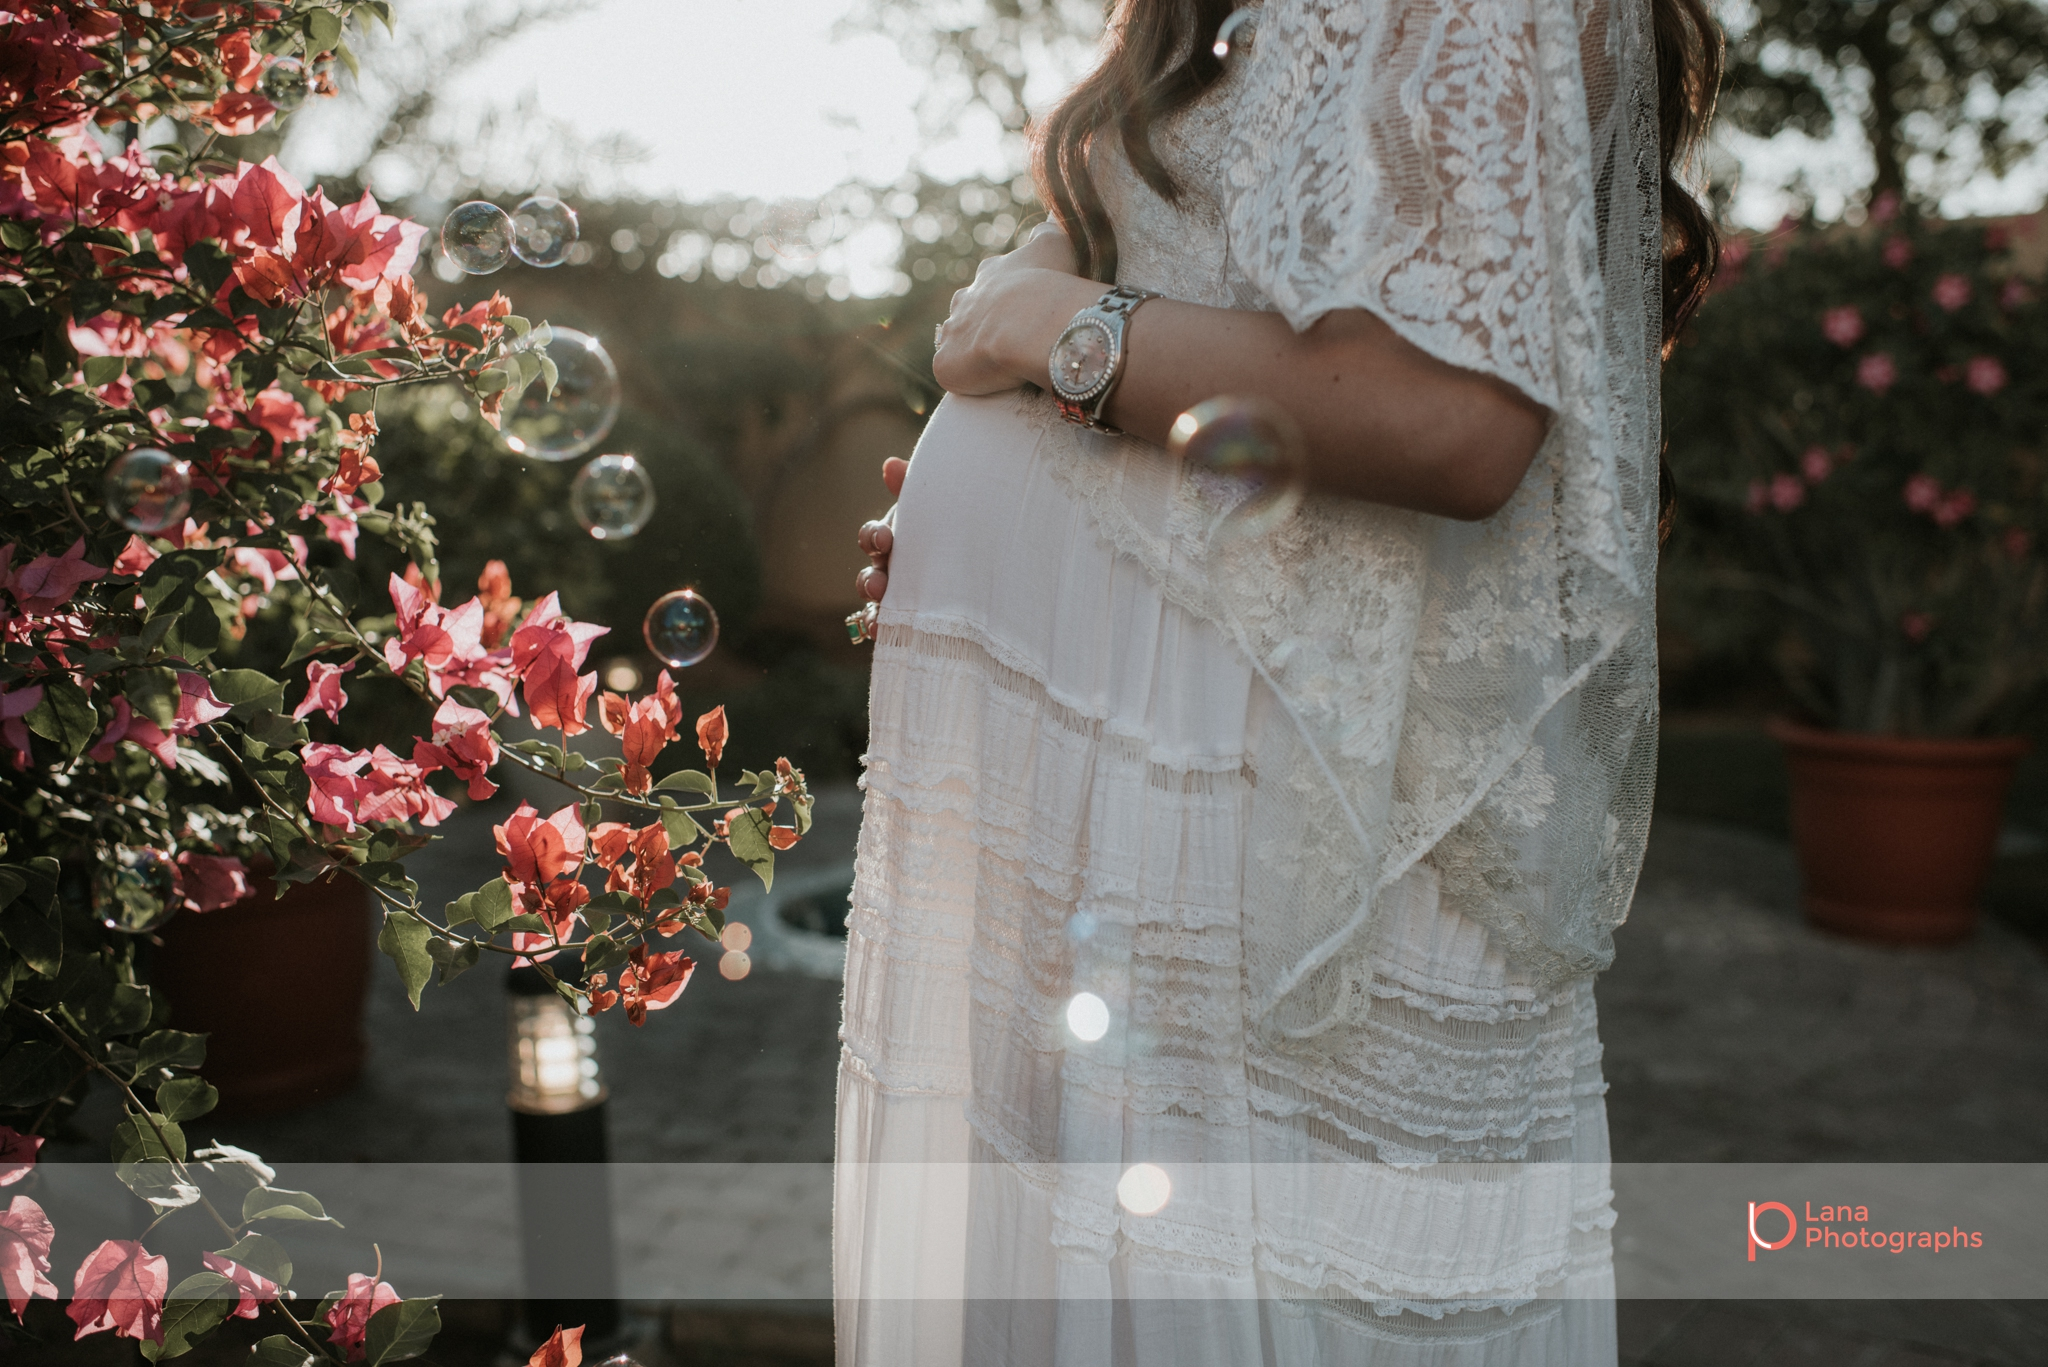 Lana Photographs Family Photographer Dubai Top Family Photographers portrait of a woman's pregnant belly in the golden hour